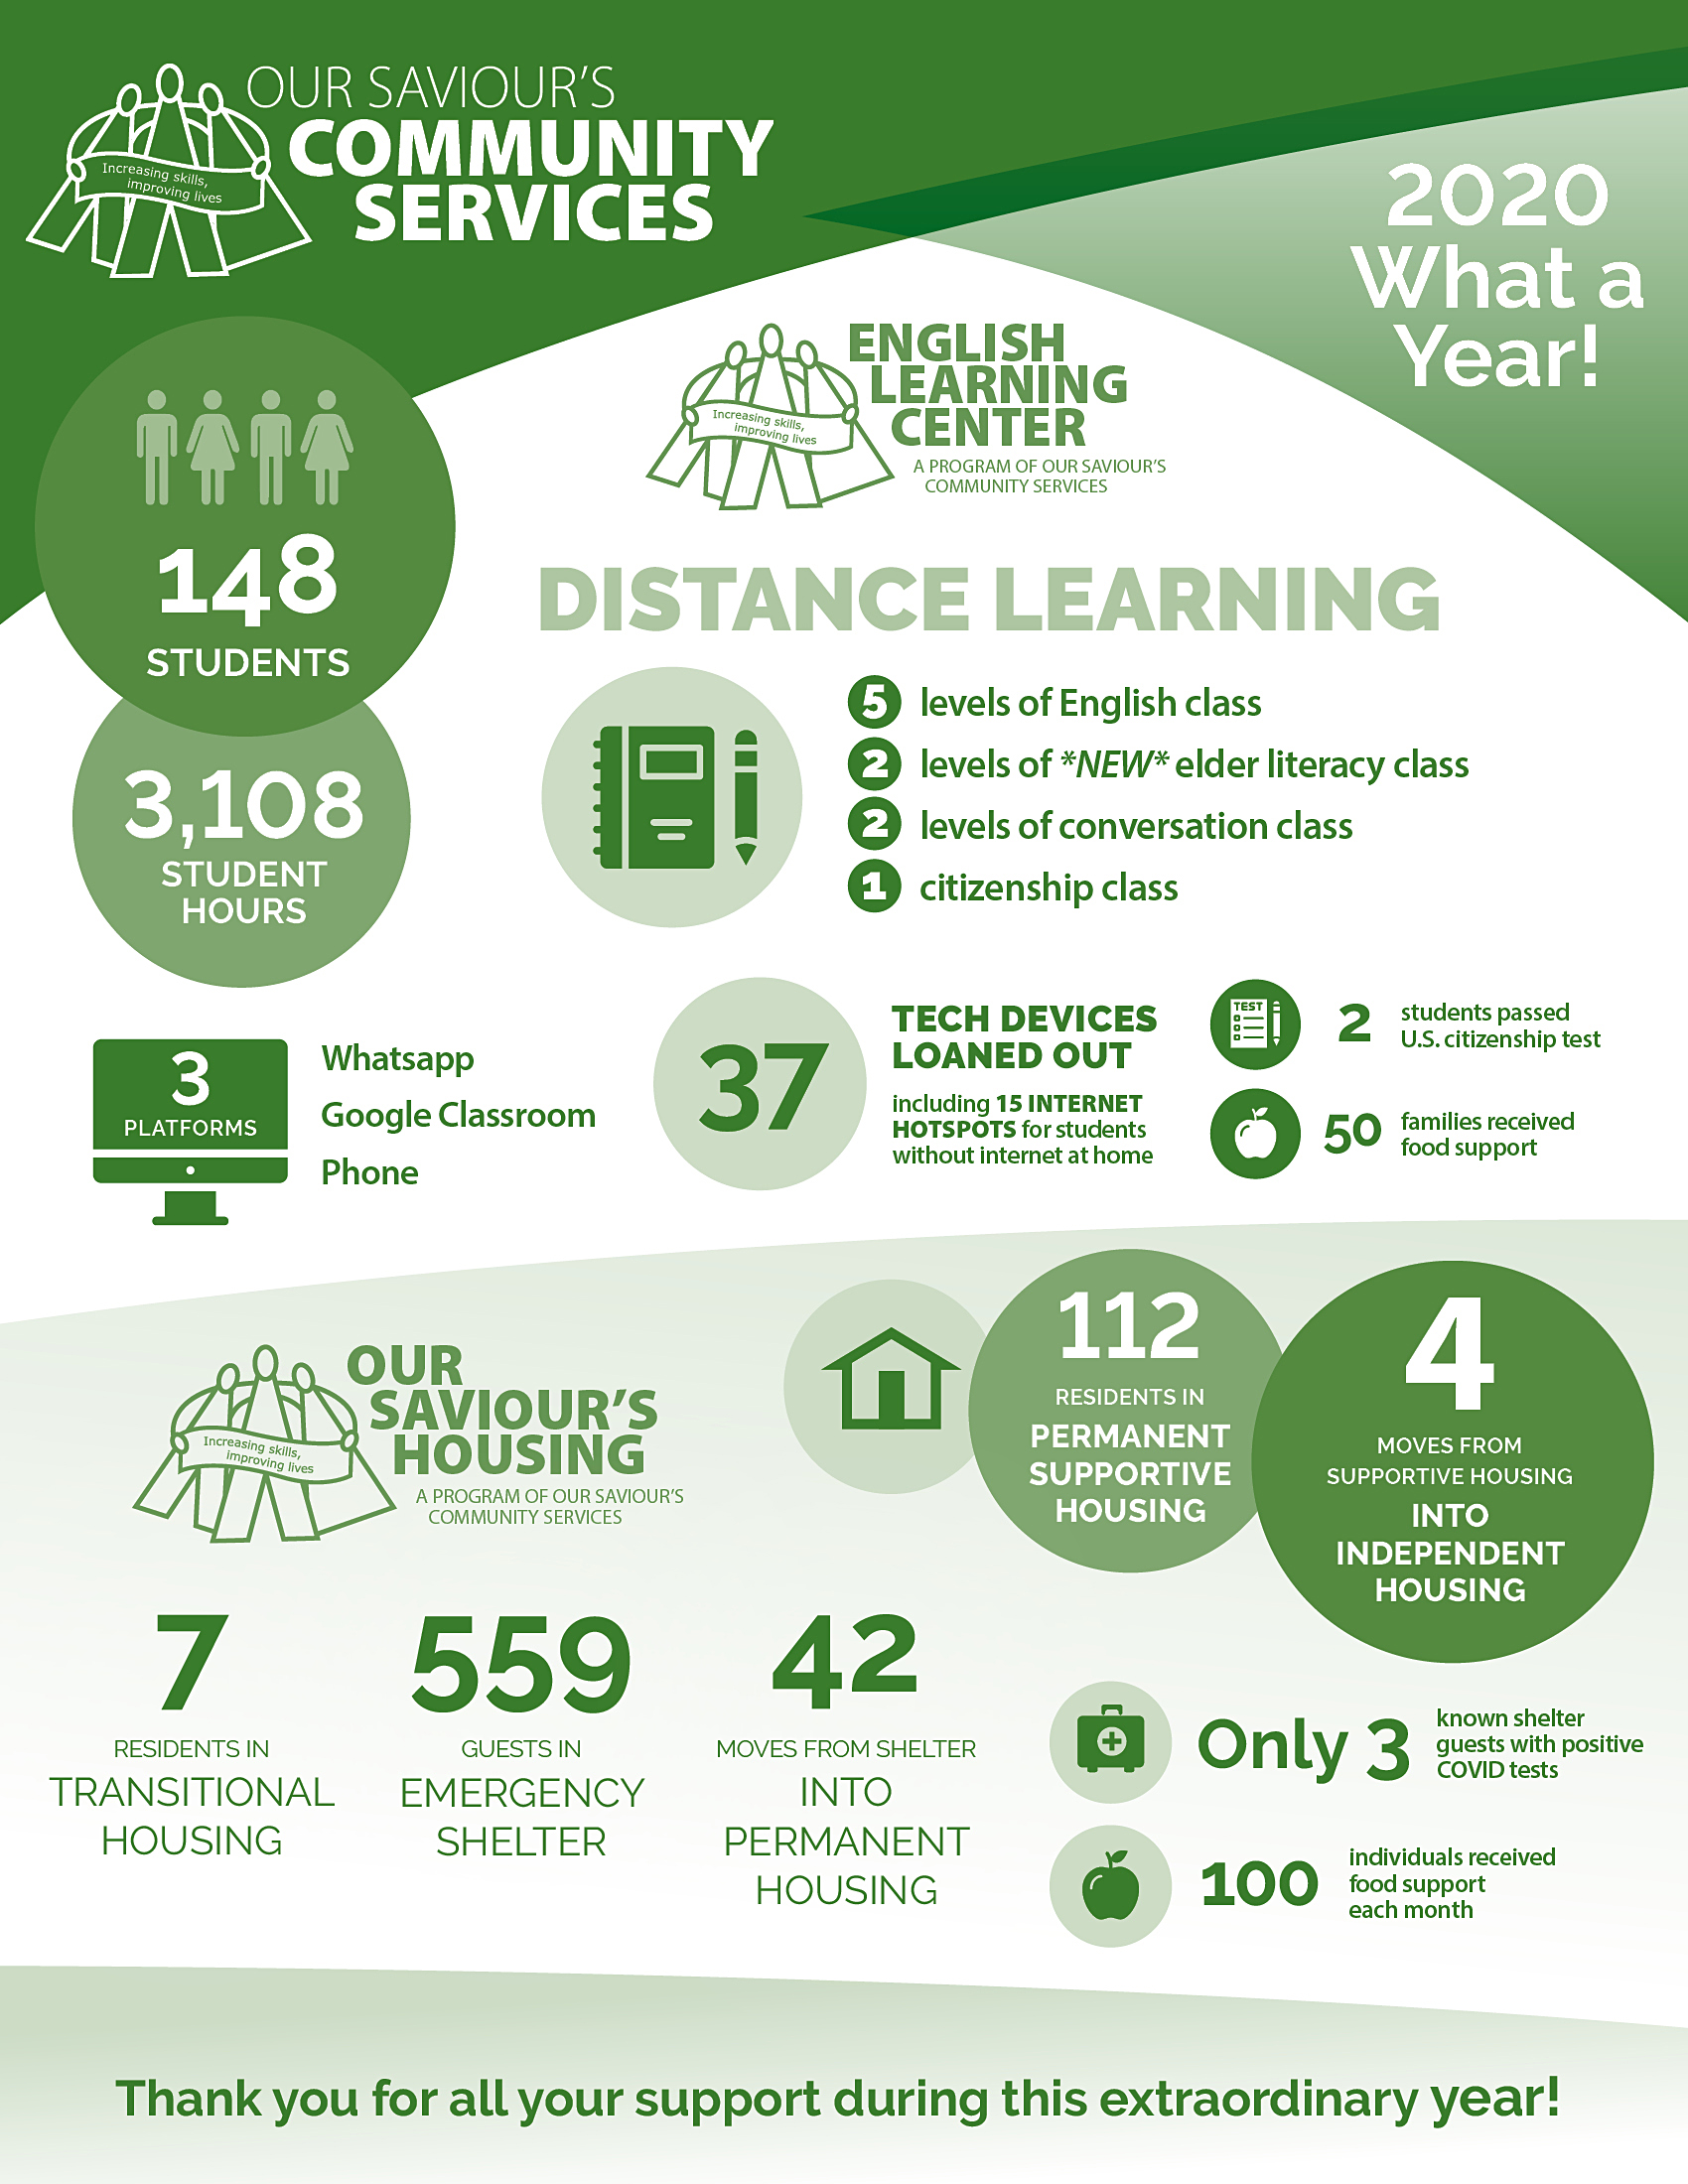 This image provides a summary by the numbers of the work of OSCS in 2020.